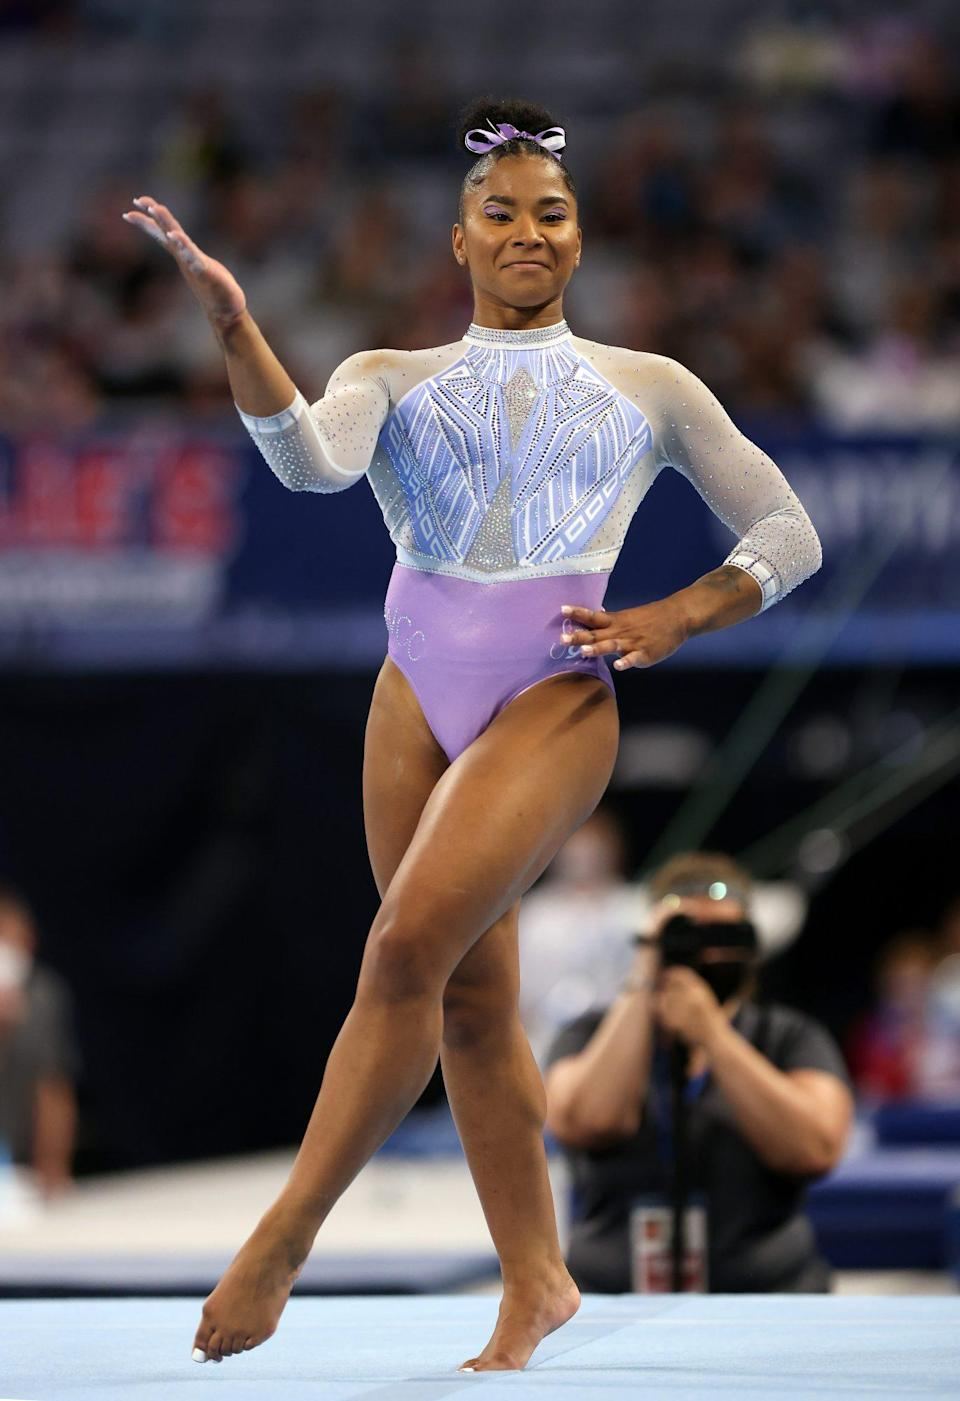 """<p>Making her first appearance on an international stage, Chiles, 20, is another one to watch, and hails from the same training gym as teammate Biles. """"I need to be able to go out there and just be Jordan and not try to be ... I don't know, like the next Gabby [Douglas], the next Simone,"""" Chiles told <em><a href=""""https://www.usatoday.com/in-depth/sports/columnist/nancy-armour/2021/06/04/2021-olympics-us-gymnast-jordan-chiles-position-reach-tokyo/7513709002/"""" rel=""""nofollow noopener"""" target=""""_blank"""" data-ylk=""""slk:USA Today"""" class=""""link rapid-noclick-resp"""">USA Today</a></em>. """"I want to be the next Jordan. I'm myself.""""</p>"""